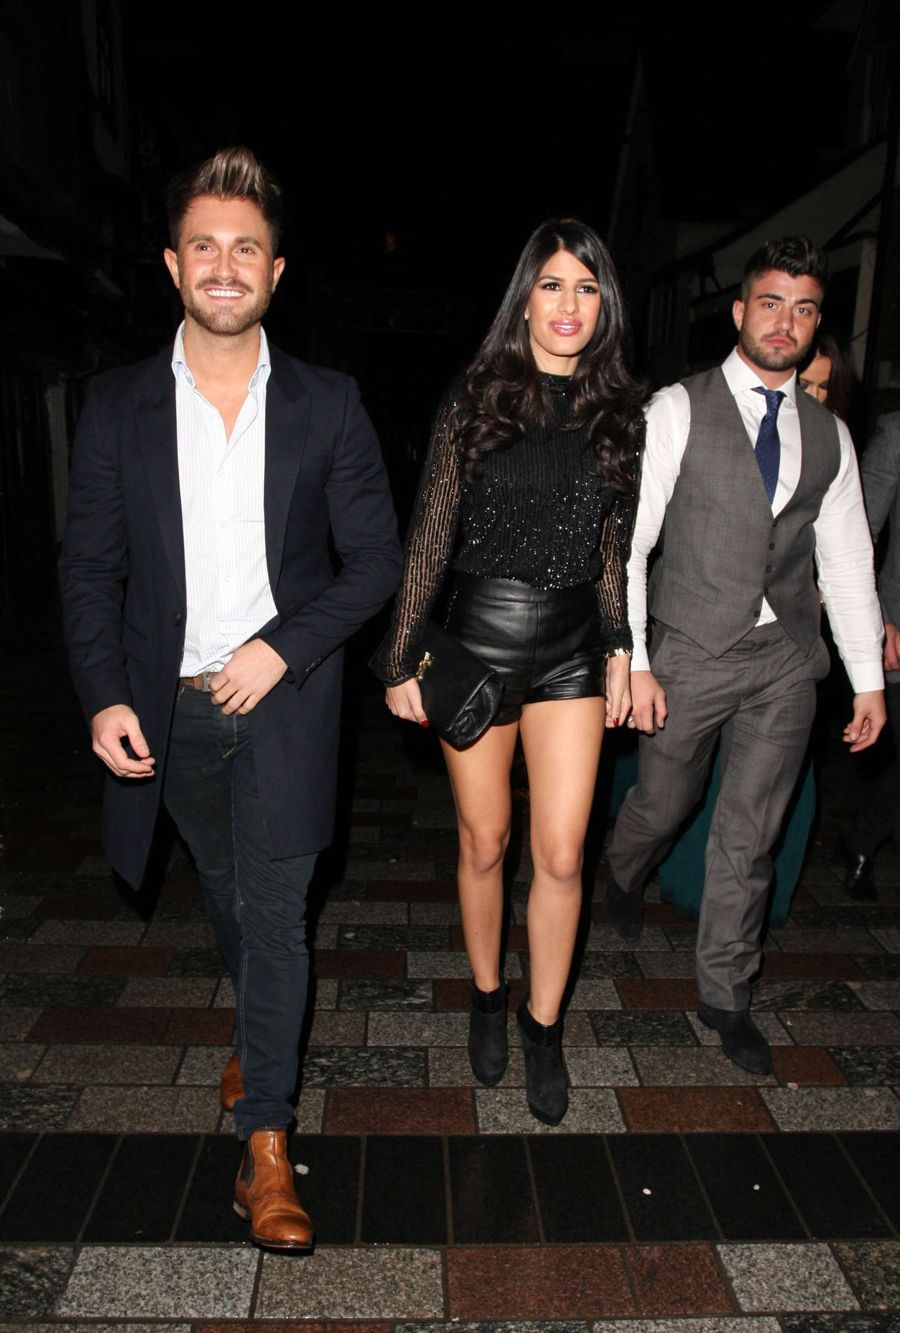 Jasmin Walia at the Gallery Nightclub in Maidstone